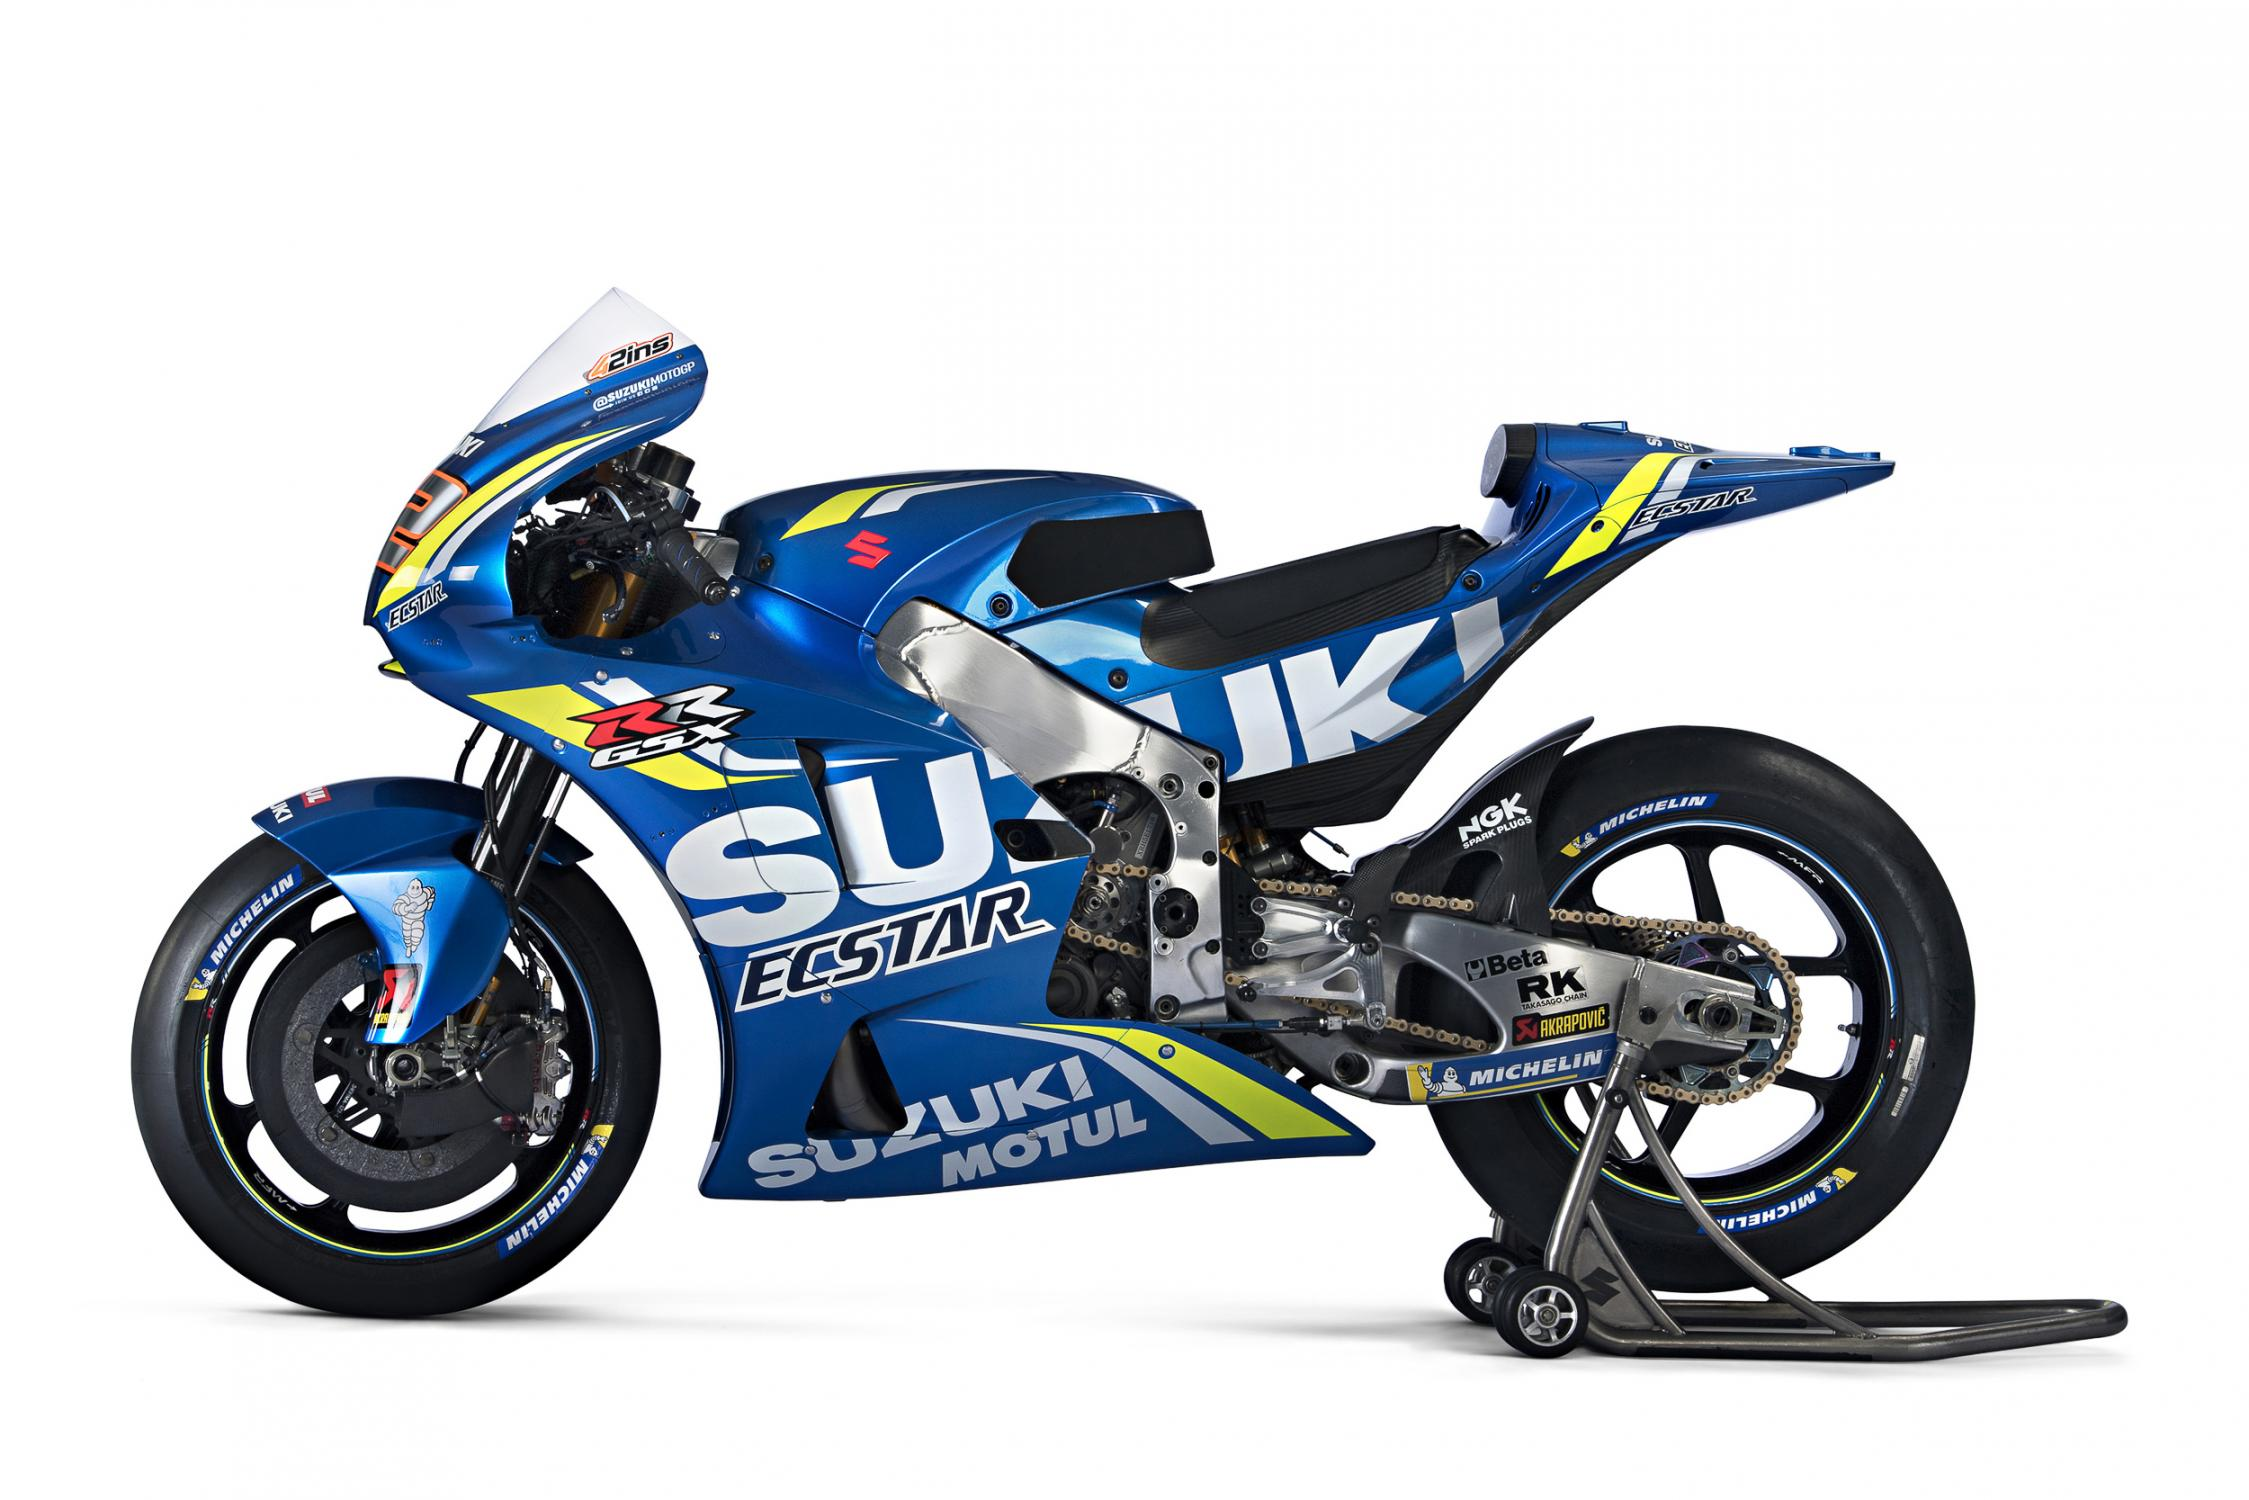 suzuki-gsx-rr-2018-motogp-machine-011.gallery_full_top_fullscreen.jpg